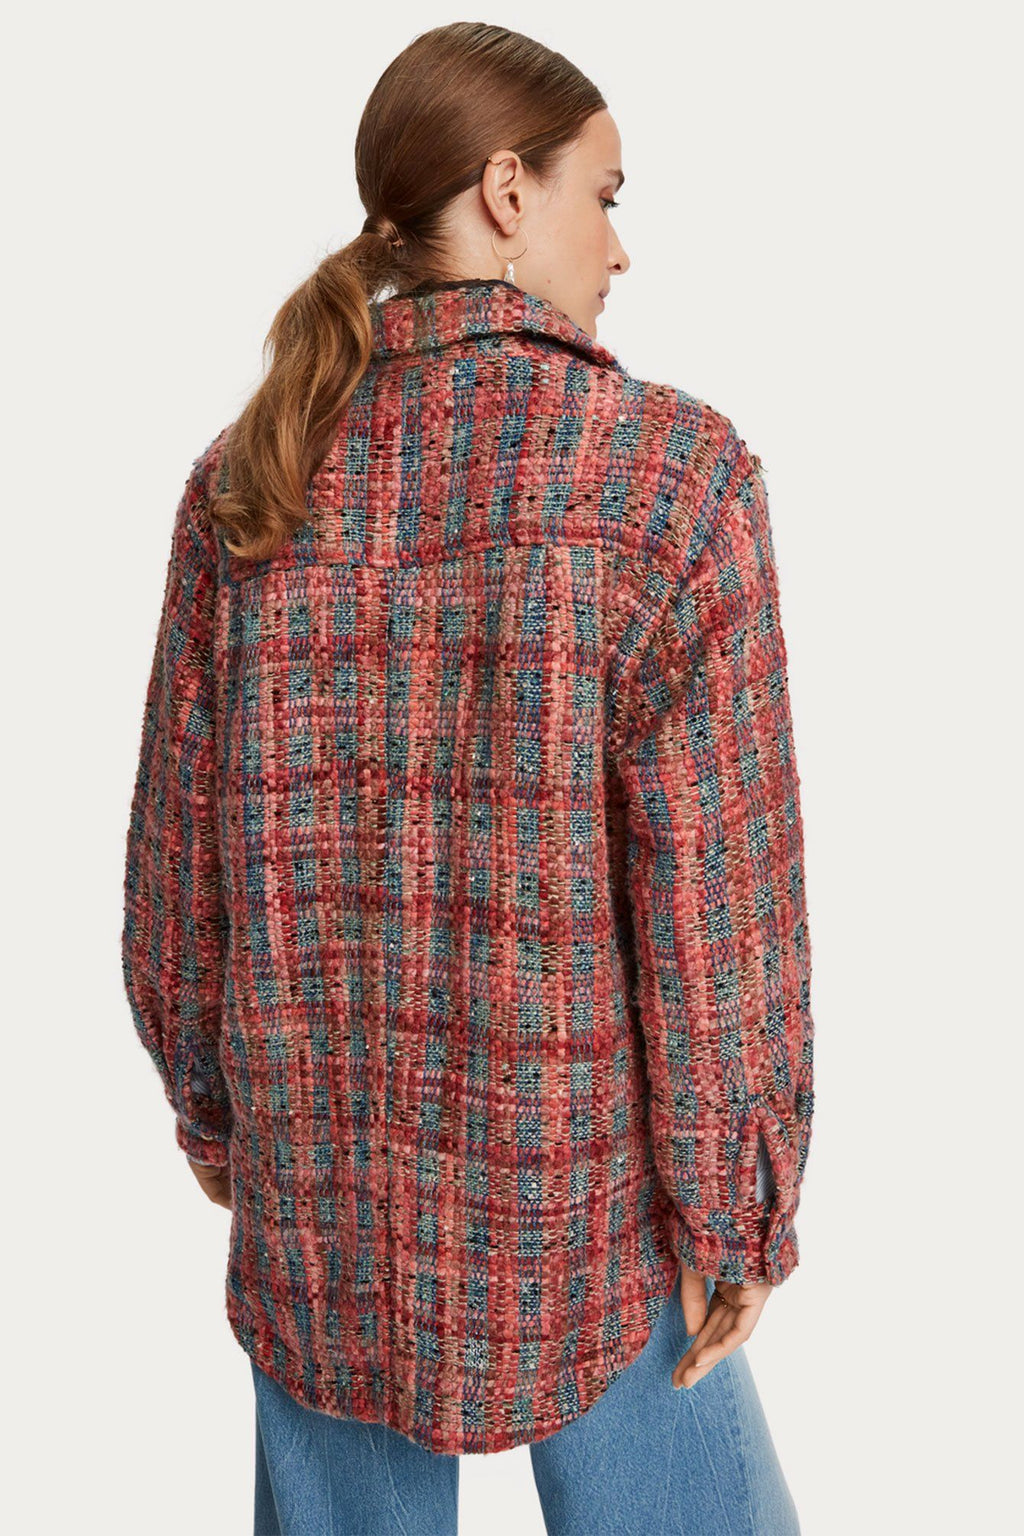 SCOTCH & SODA | Pink Tweed Shirt Jacket